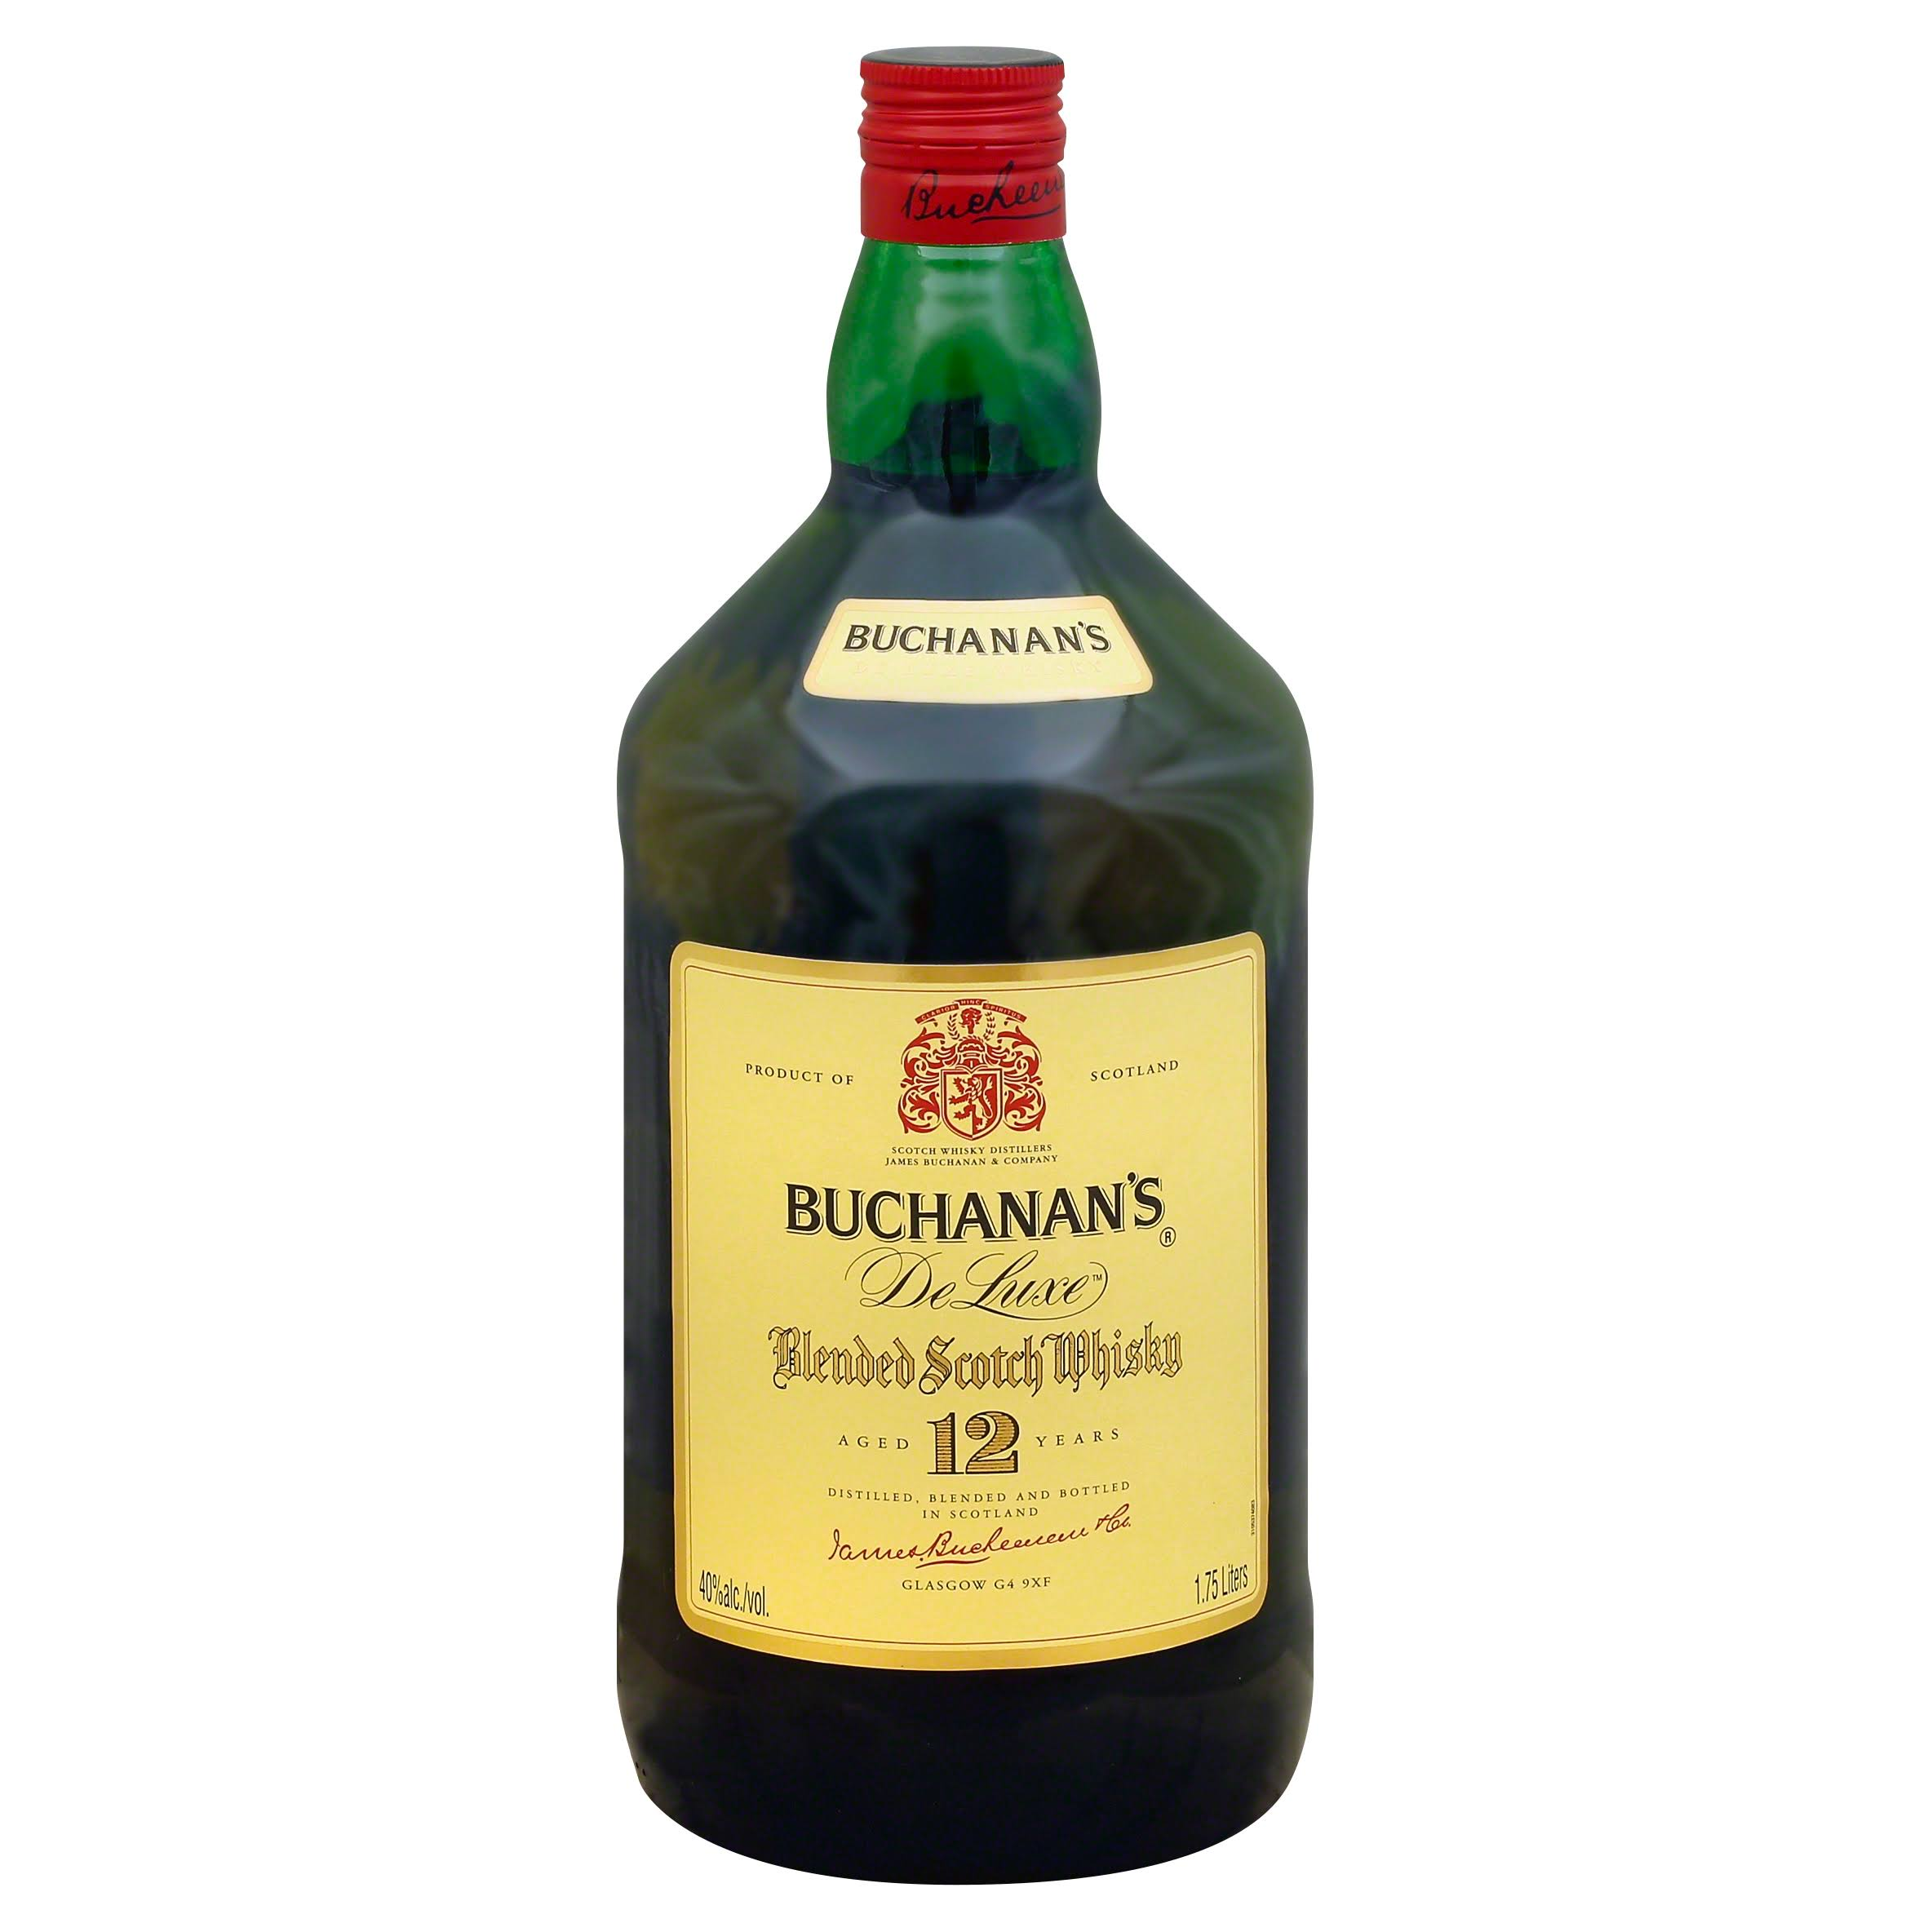 Buchanan's Blended Scotch Whisky